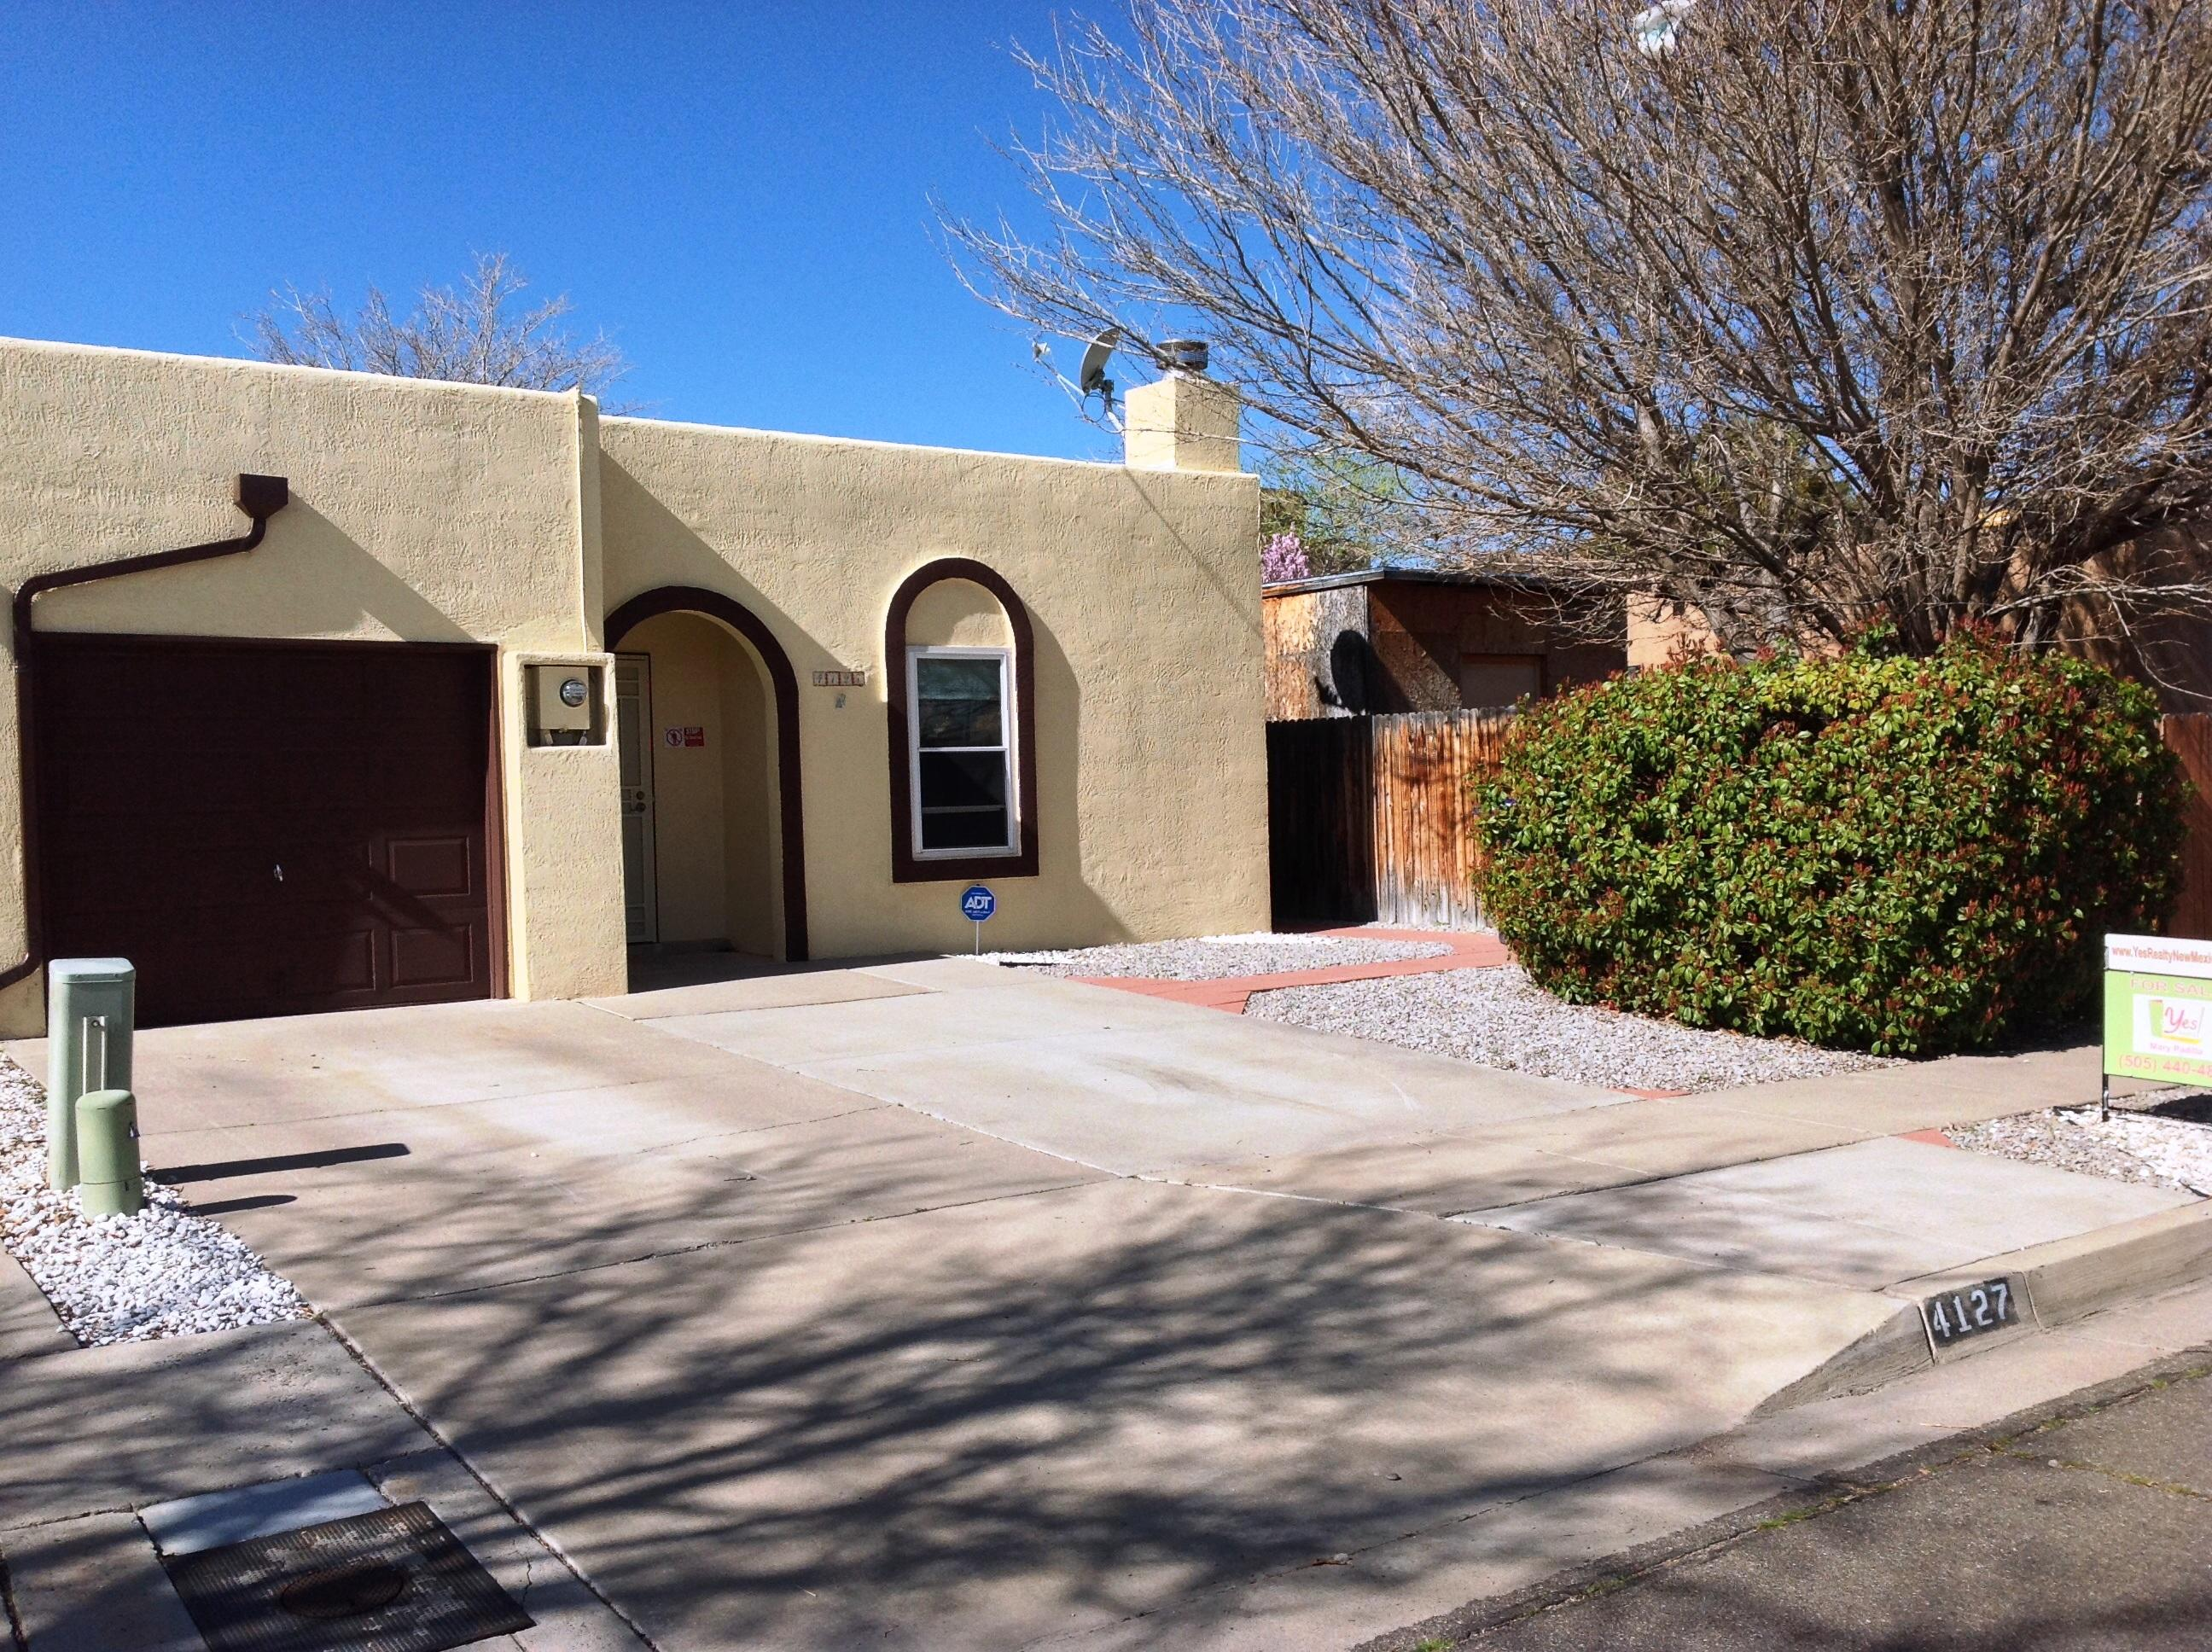 4127 NW 71St Street, Northwest Albuquerque and Northwest Heights, New Mexico